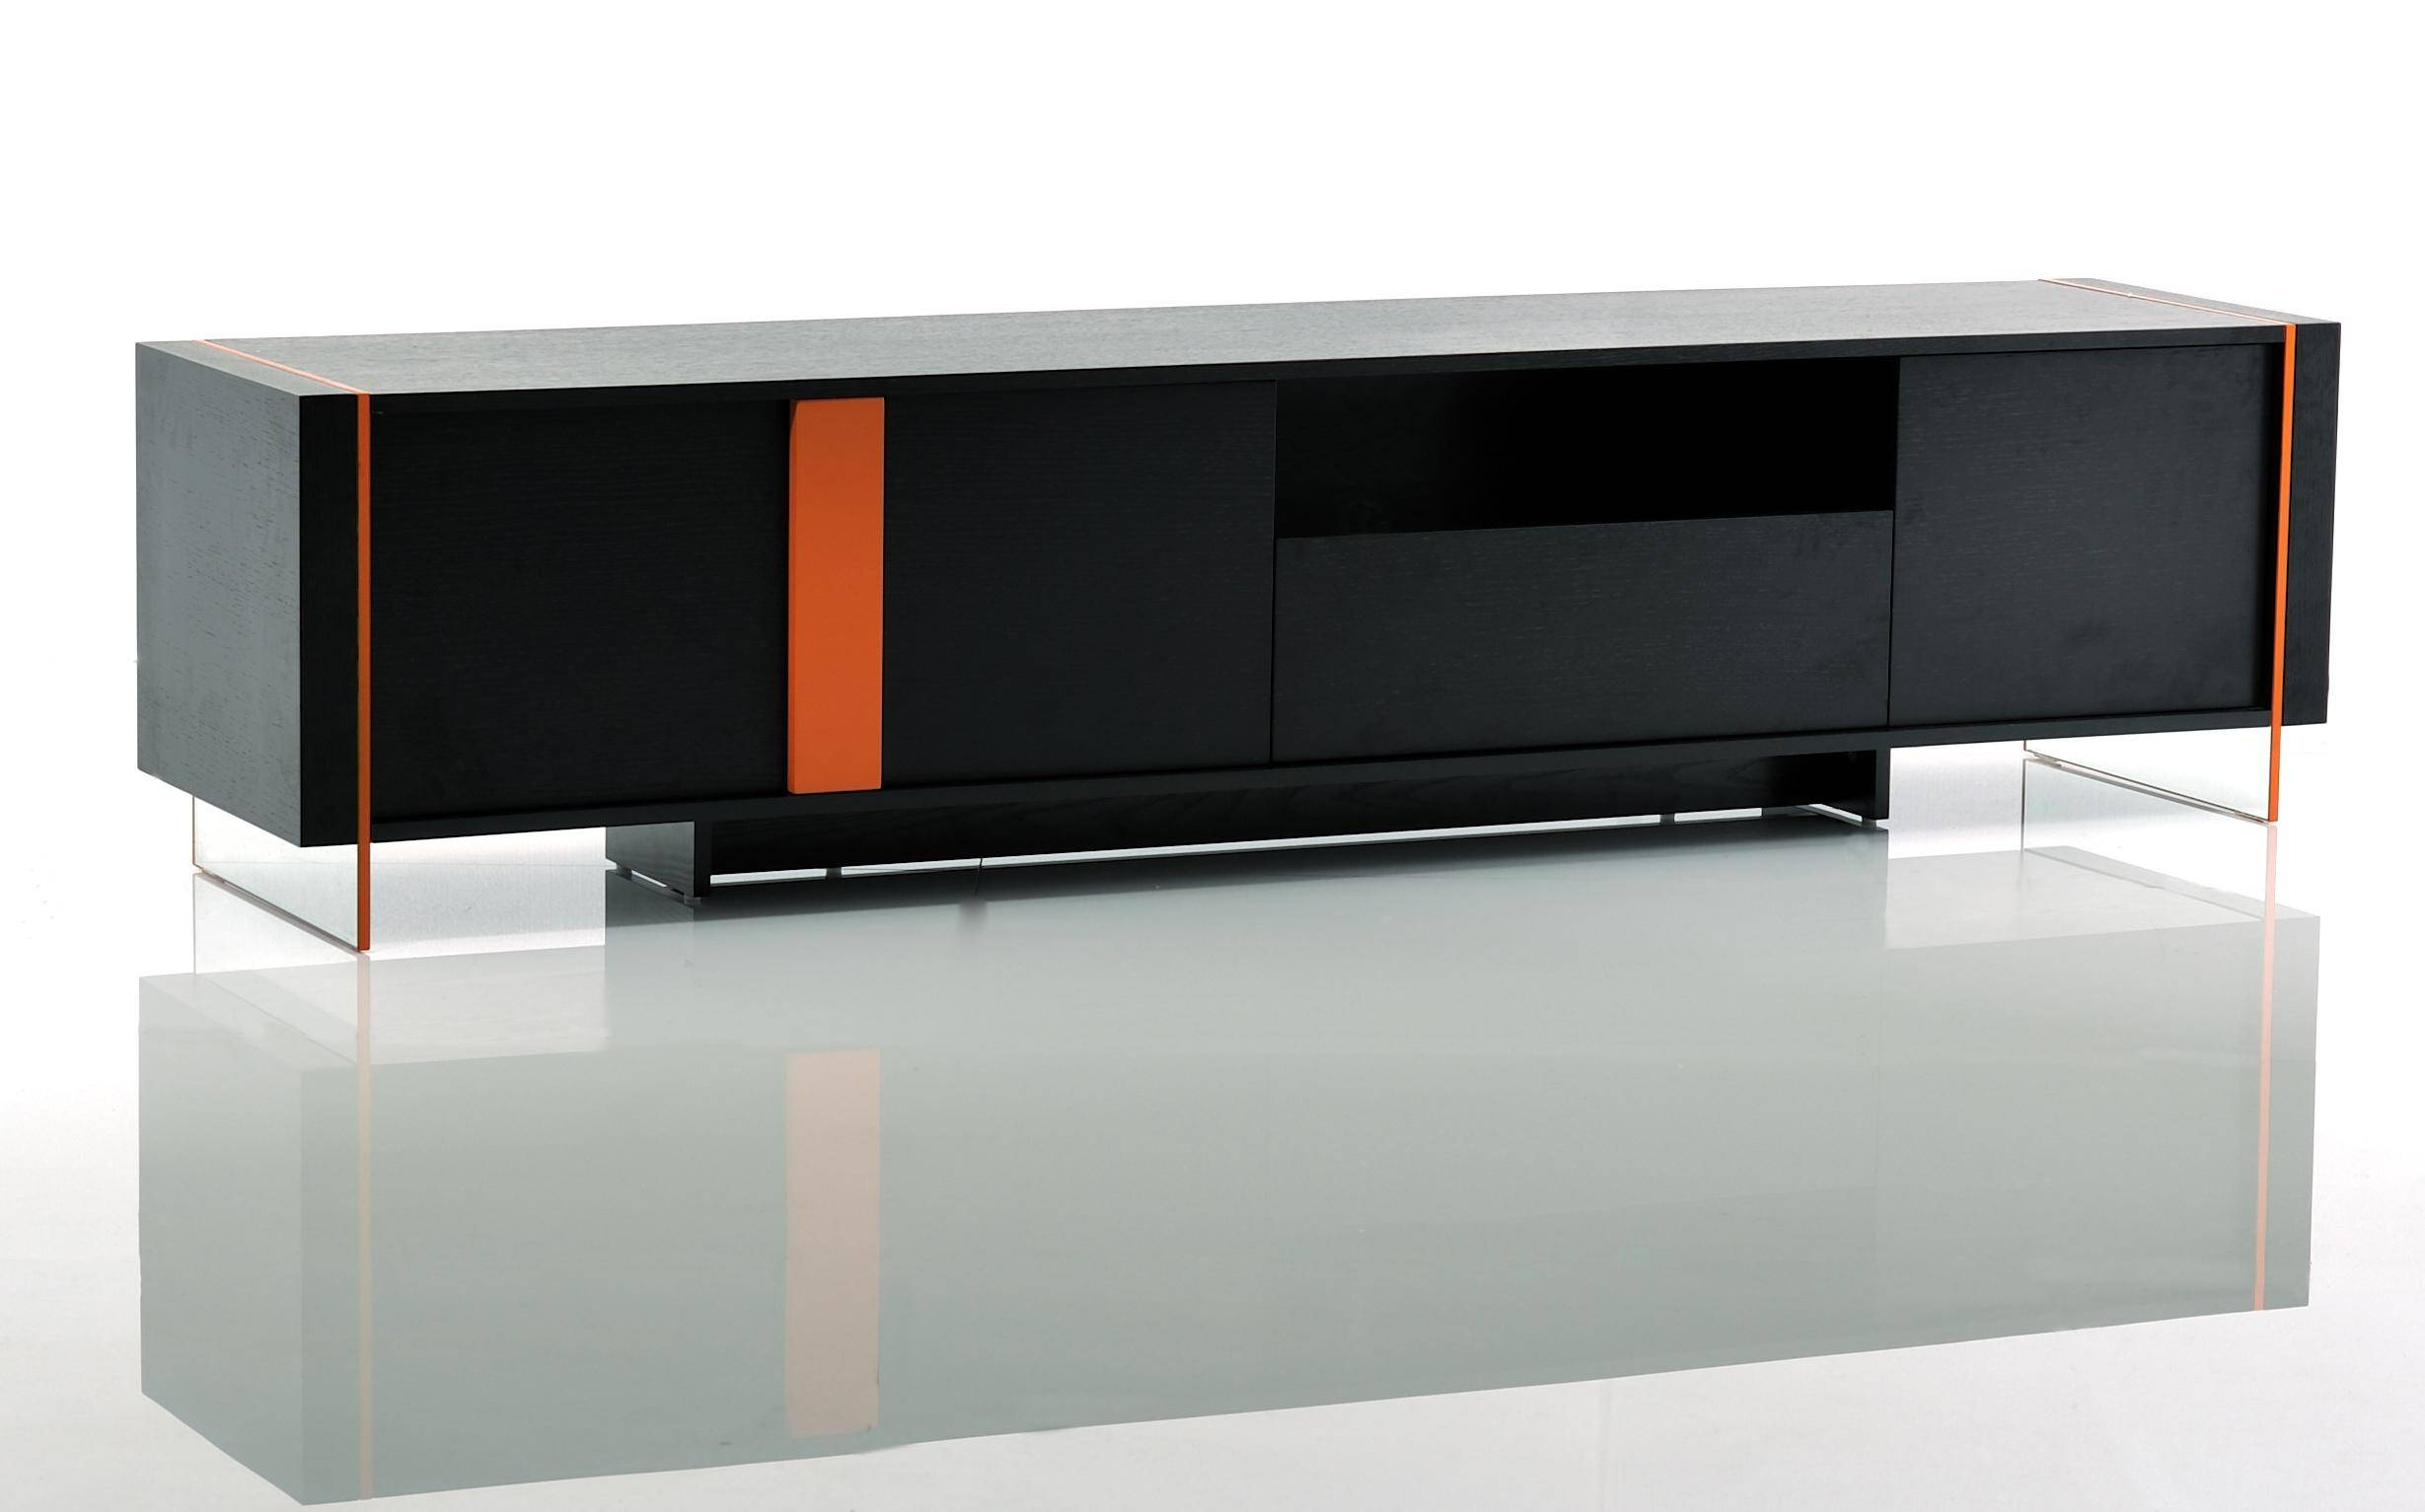 Rectangle Modern Flat Tv Stand Made Of Solid Wood In Black Throughout Rectangular Tv Stands (View 10 of 15)